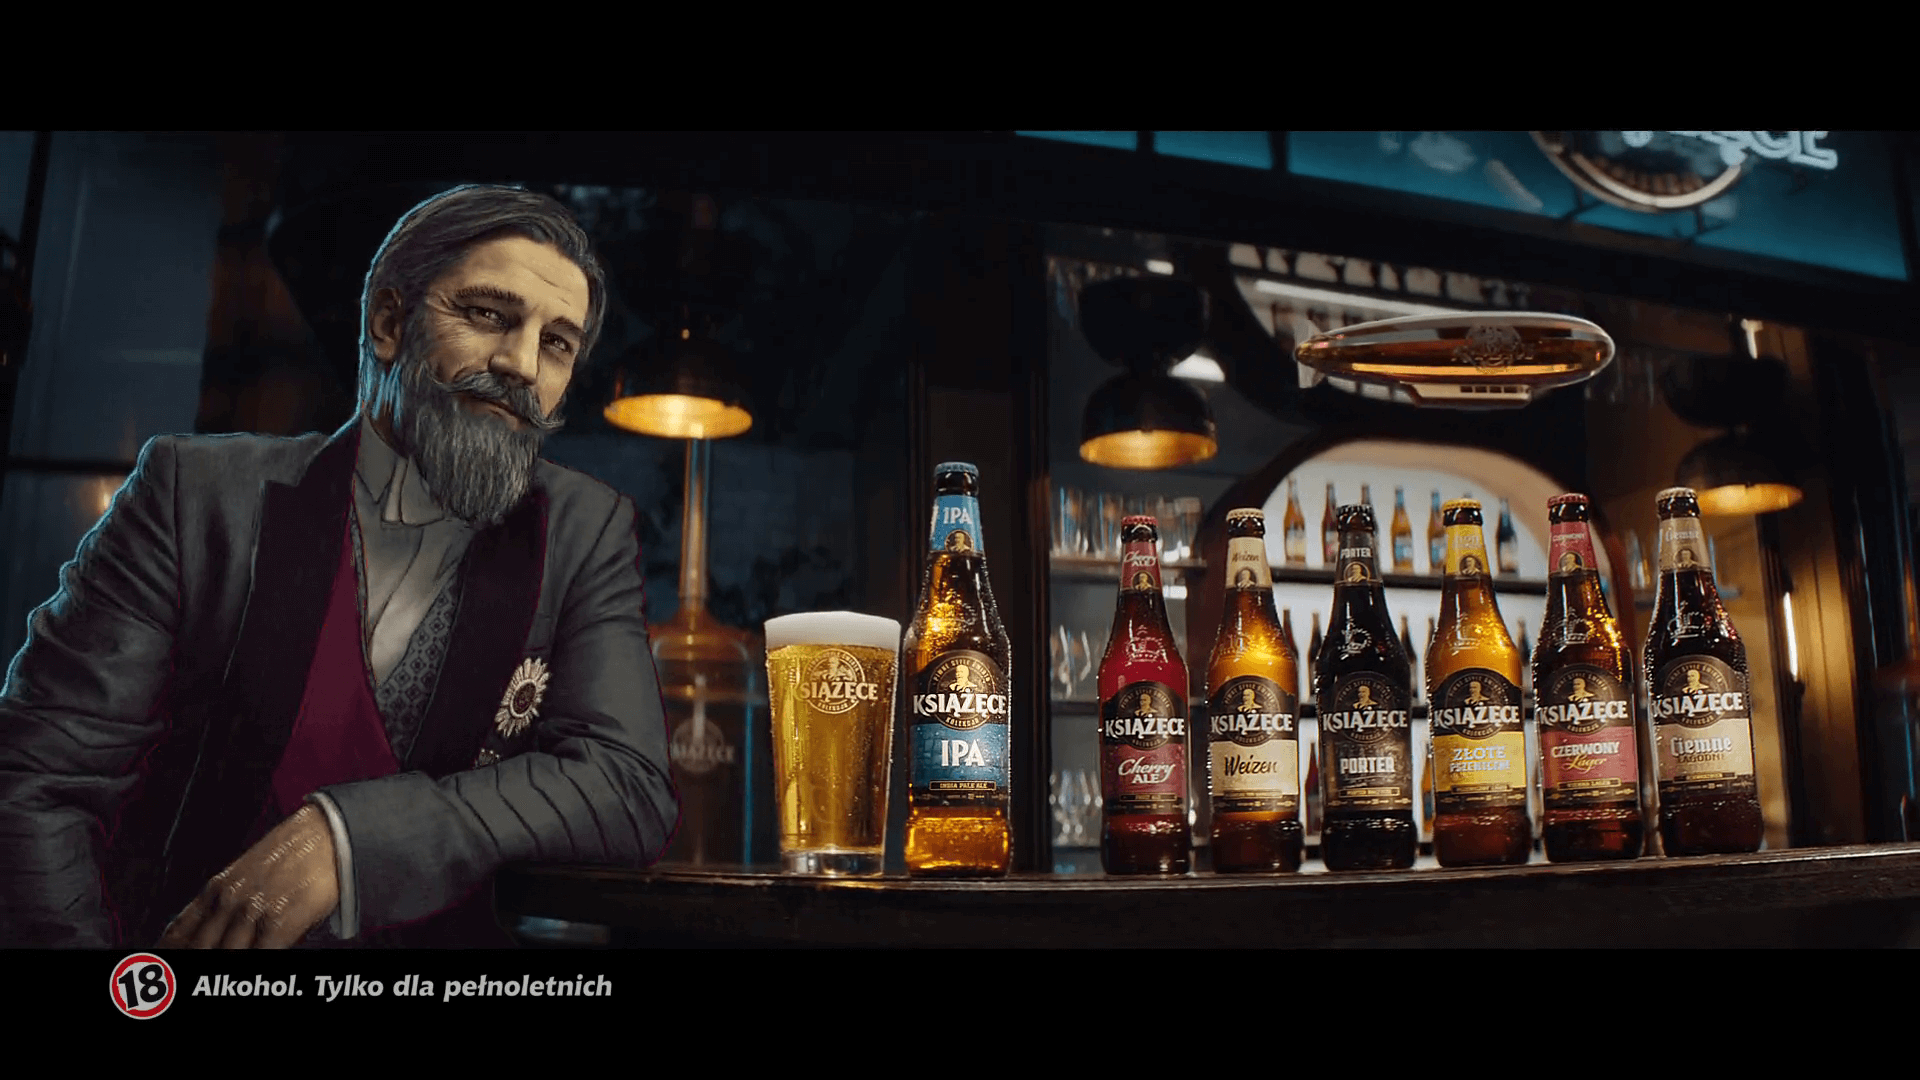 Książęce with the Prince playing the lead role The brand launches a new campaign